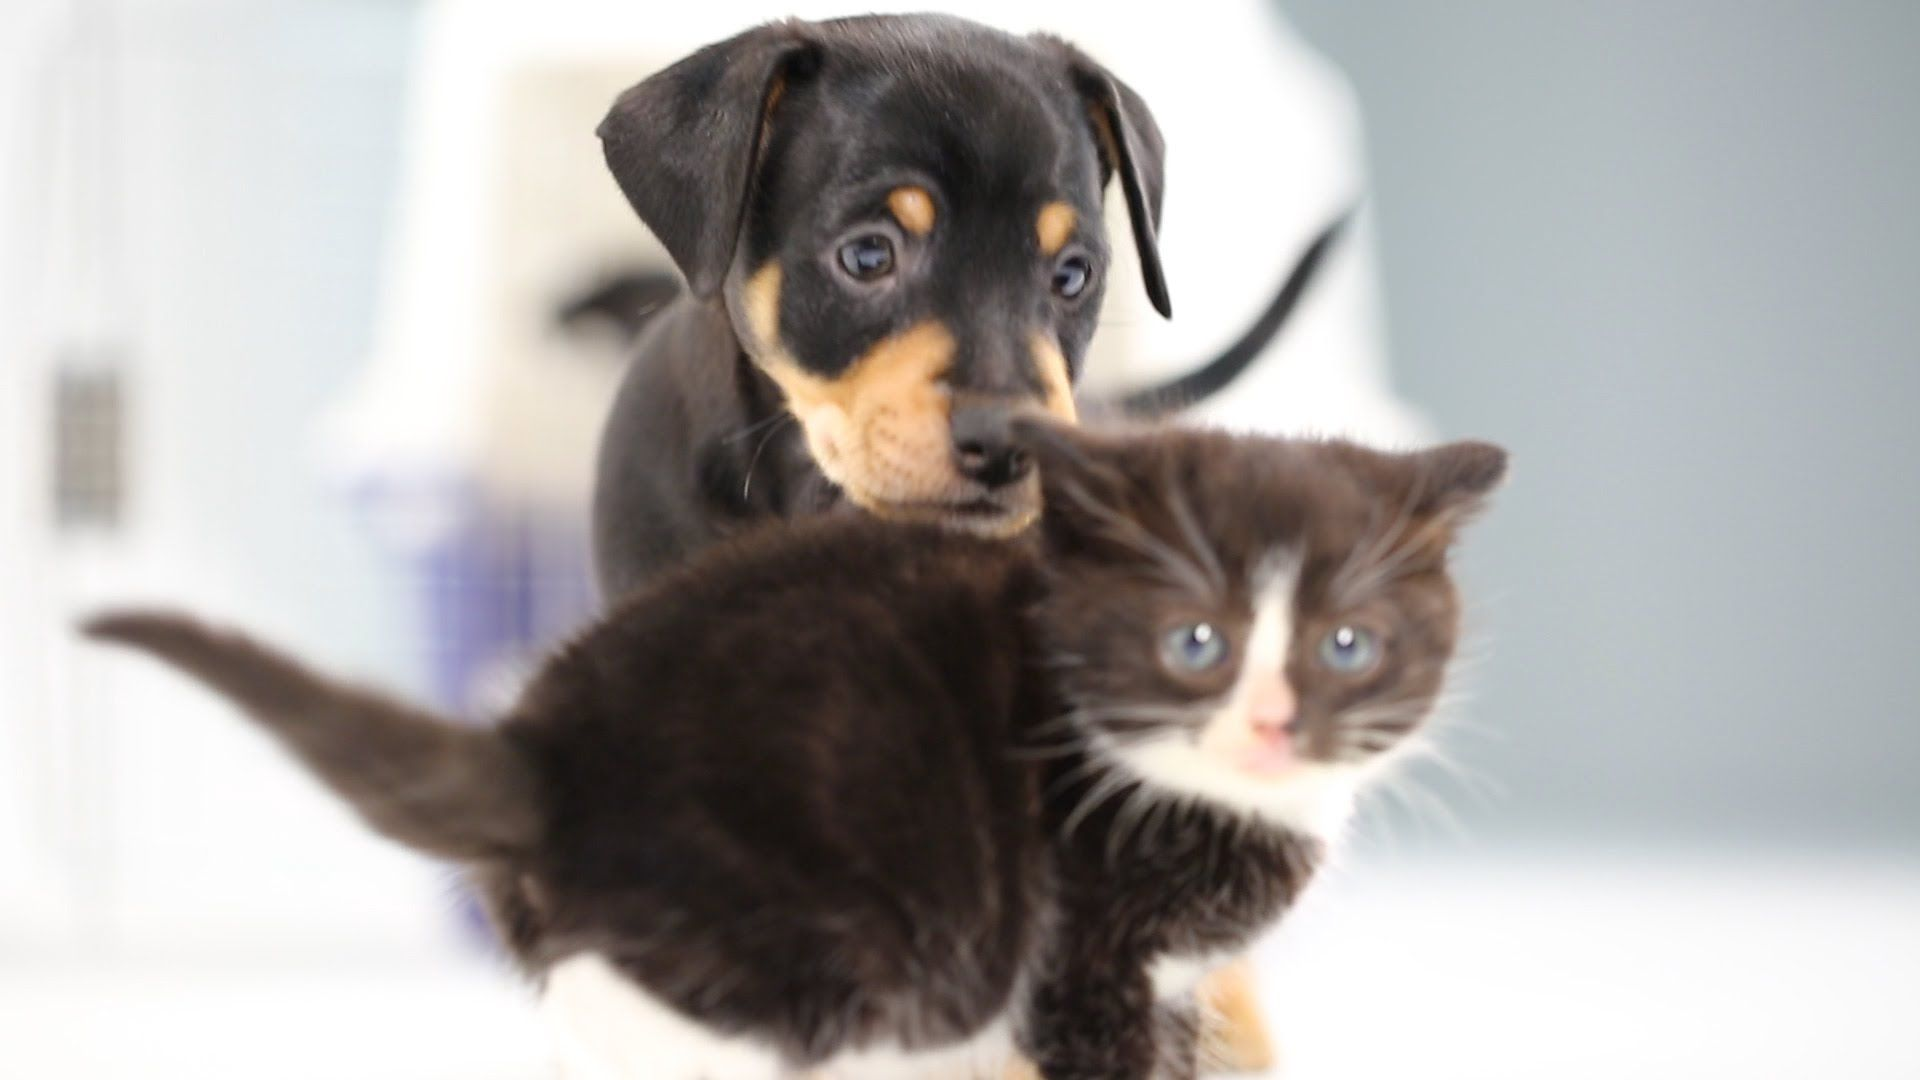 Kittens Meet Puppies For The First Time Puppies And Kitties Kittens Cutest Kittens And Puppies